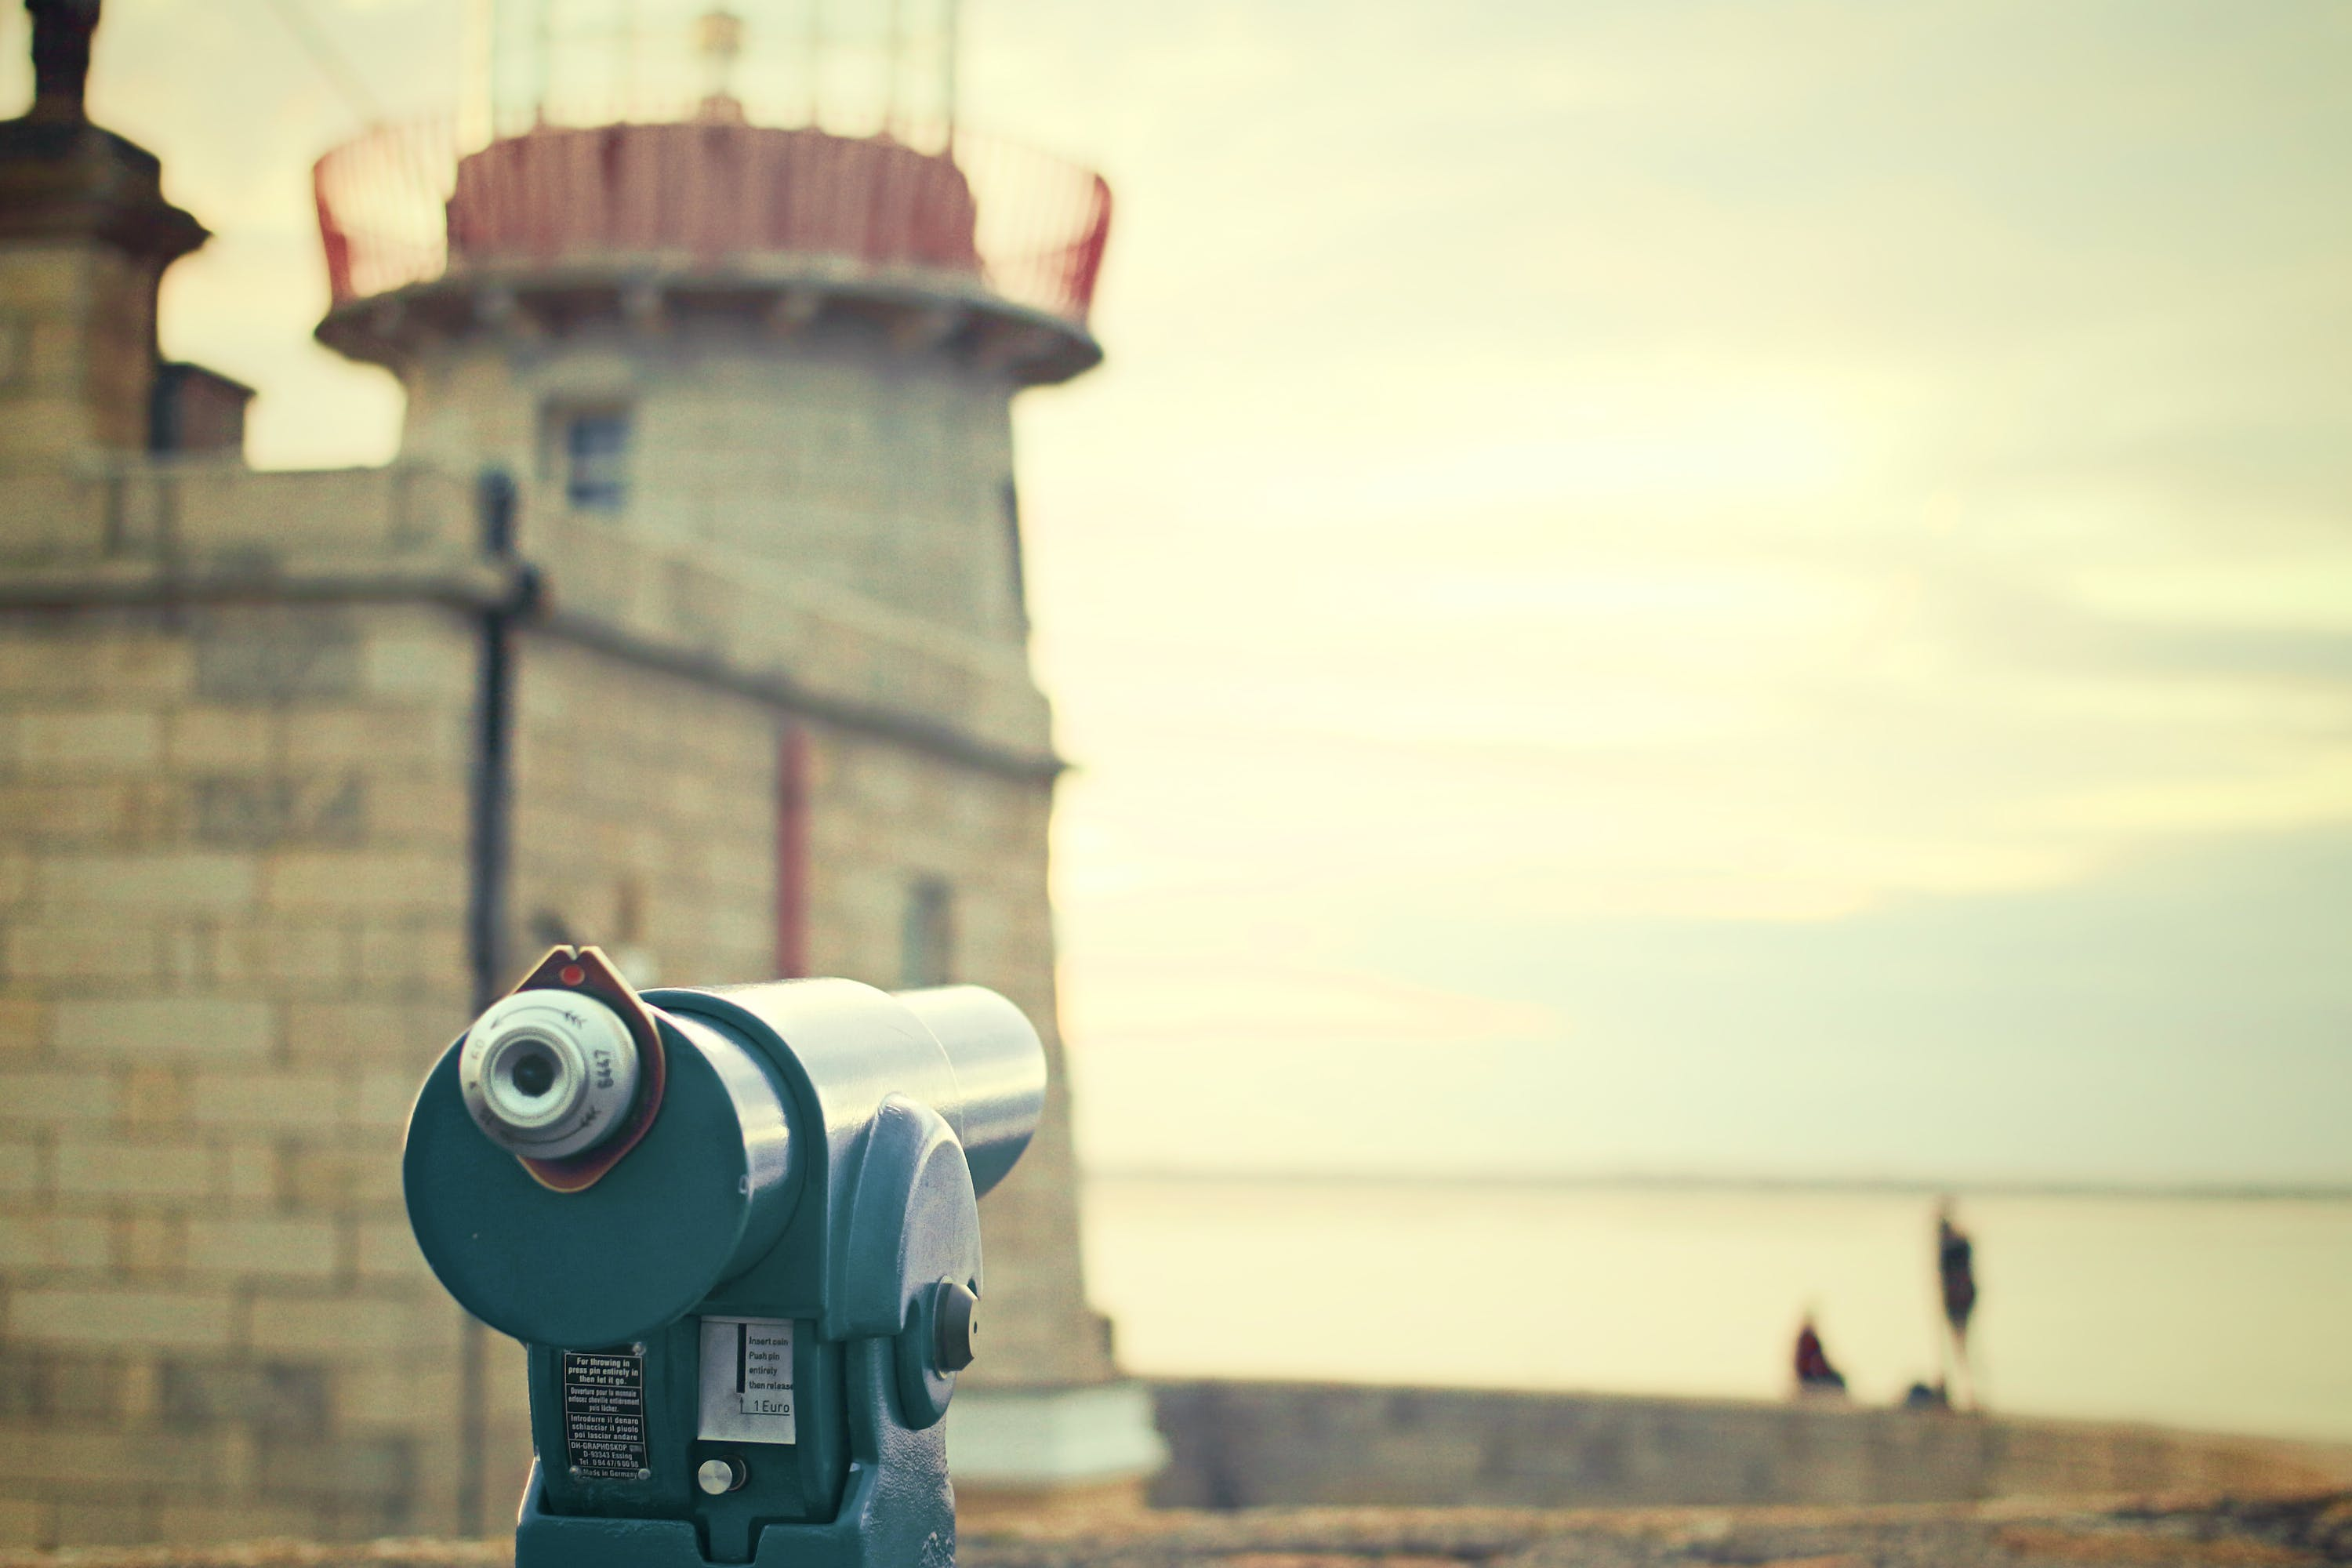 Green and Gray Tower Viewer Telescope